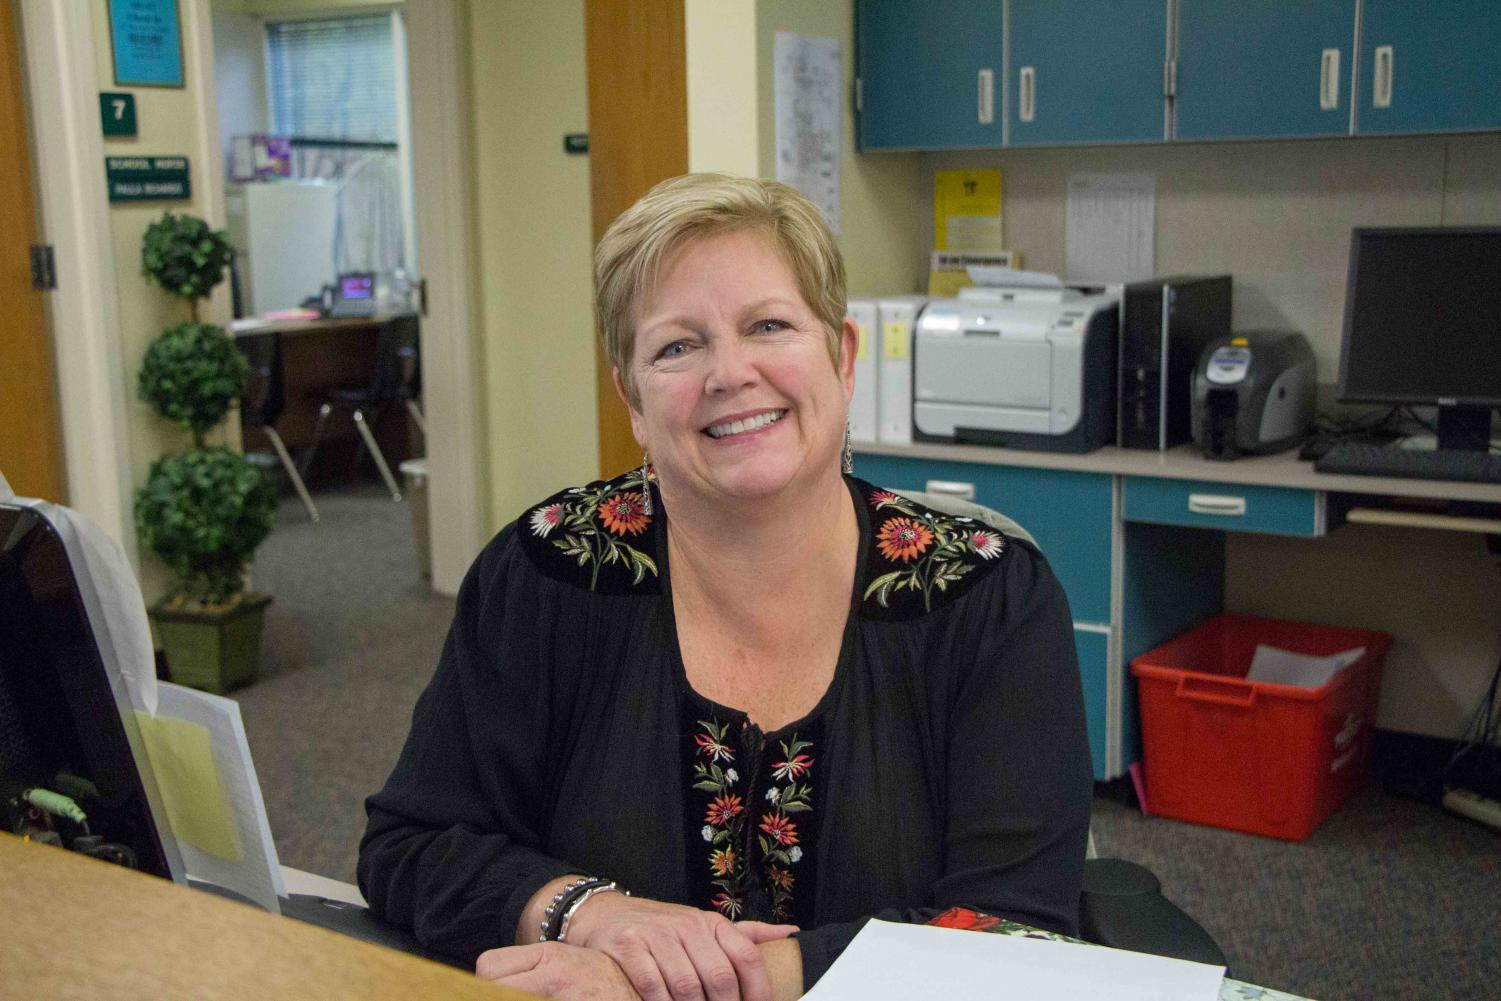 Brenda Anderton works in the Student Services Office.